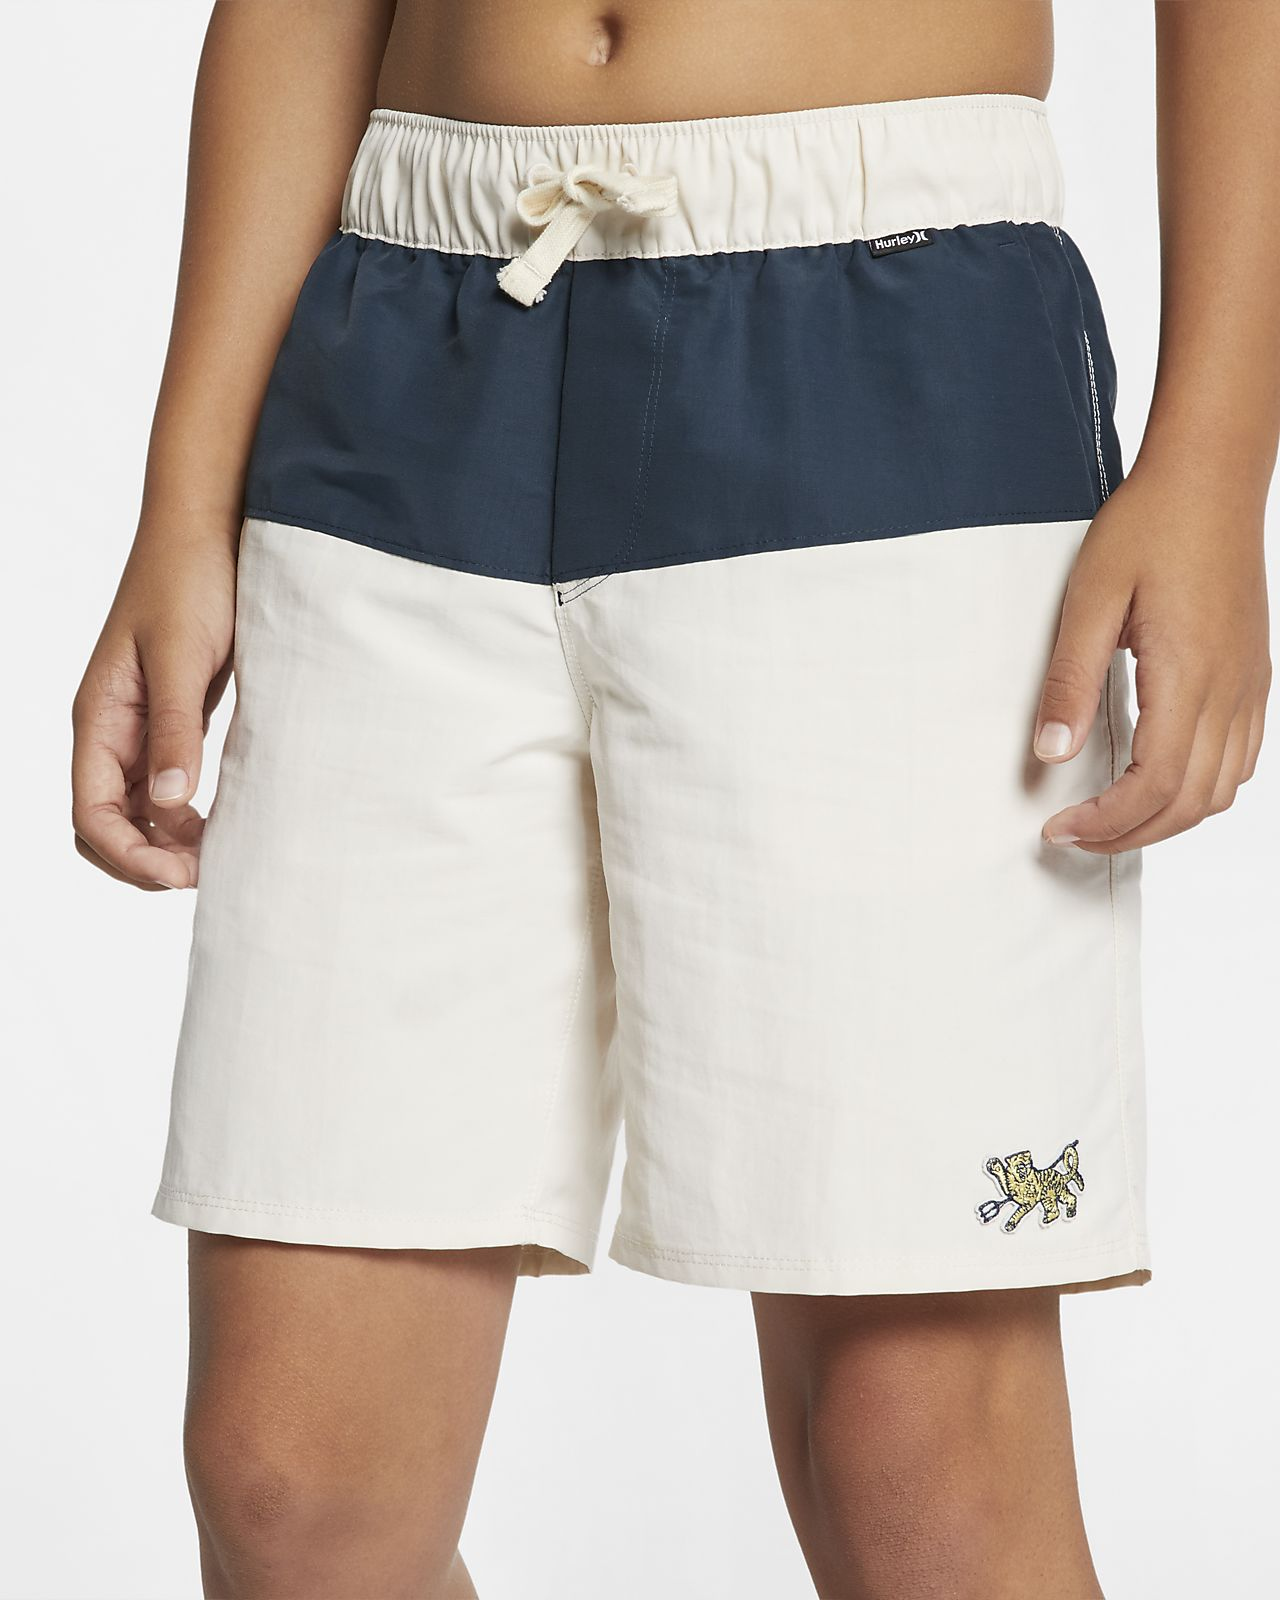 Hurley Trident Volley Boys' 41cm (approx.) Walkshorts